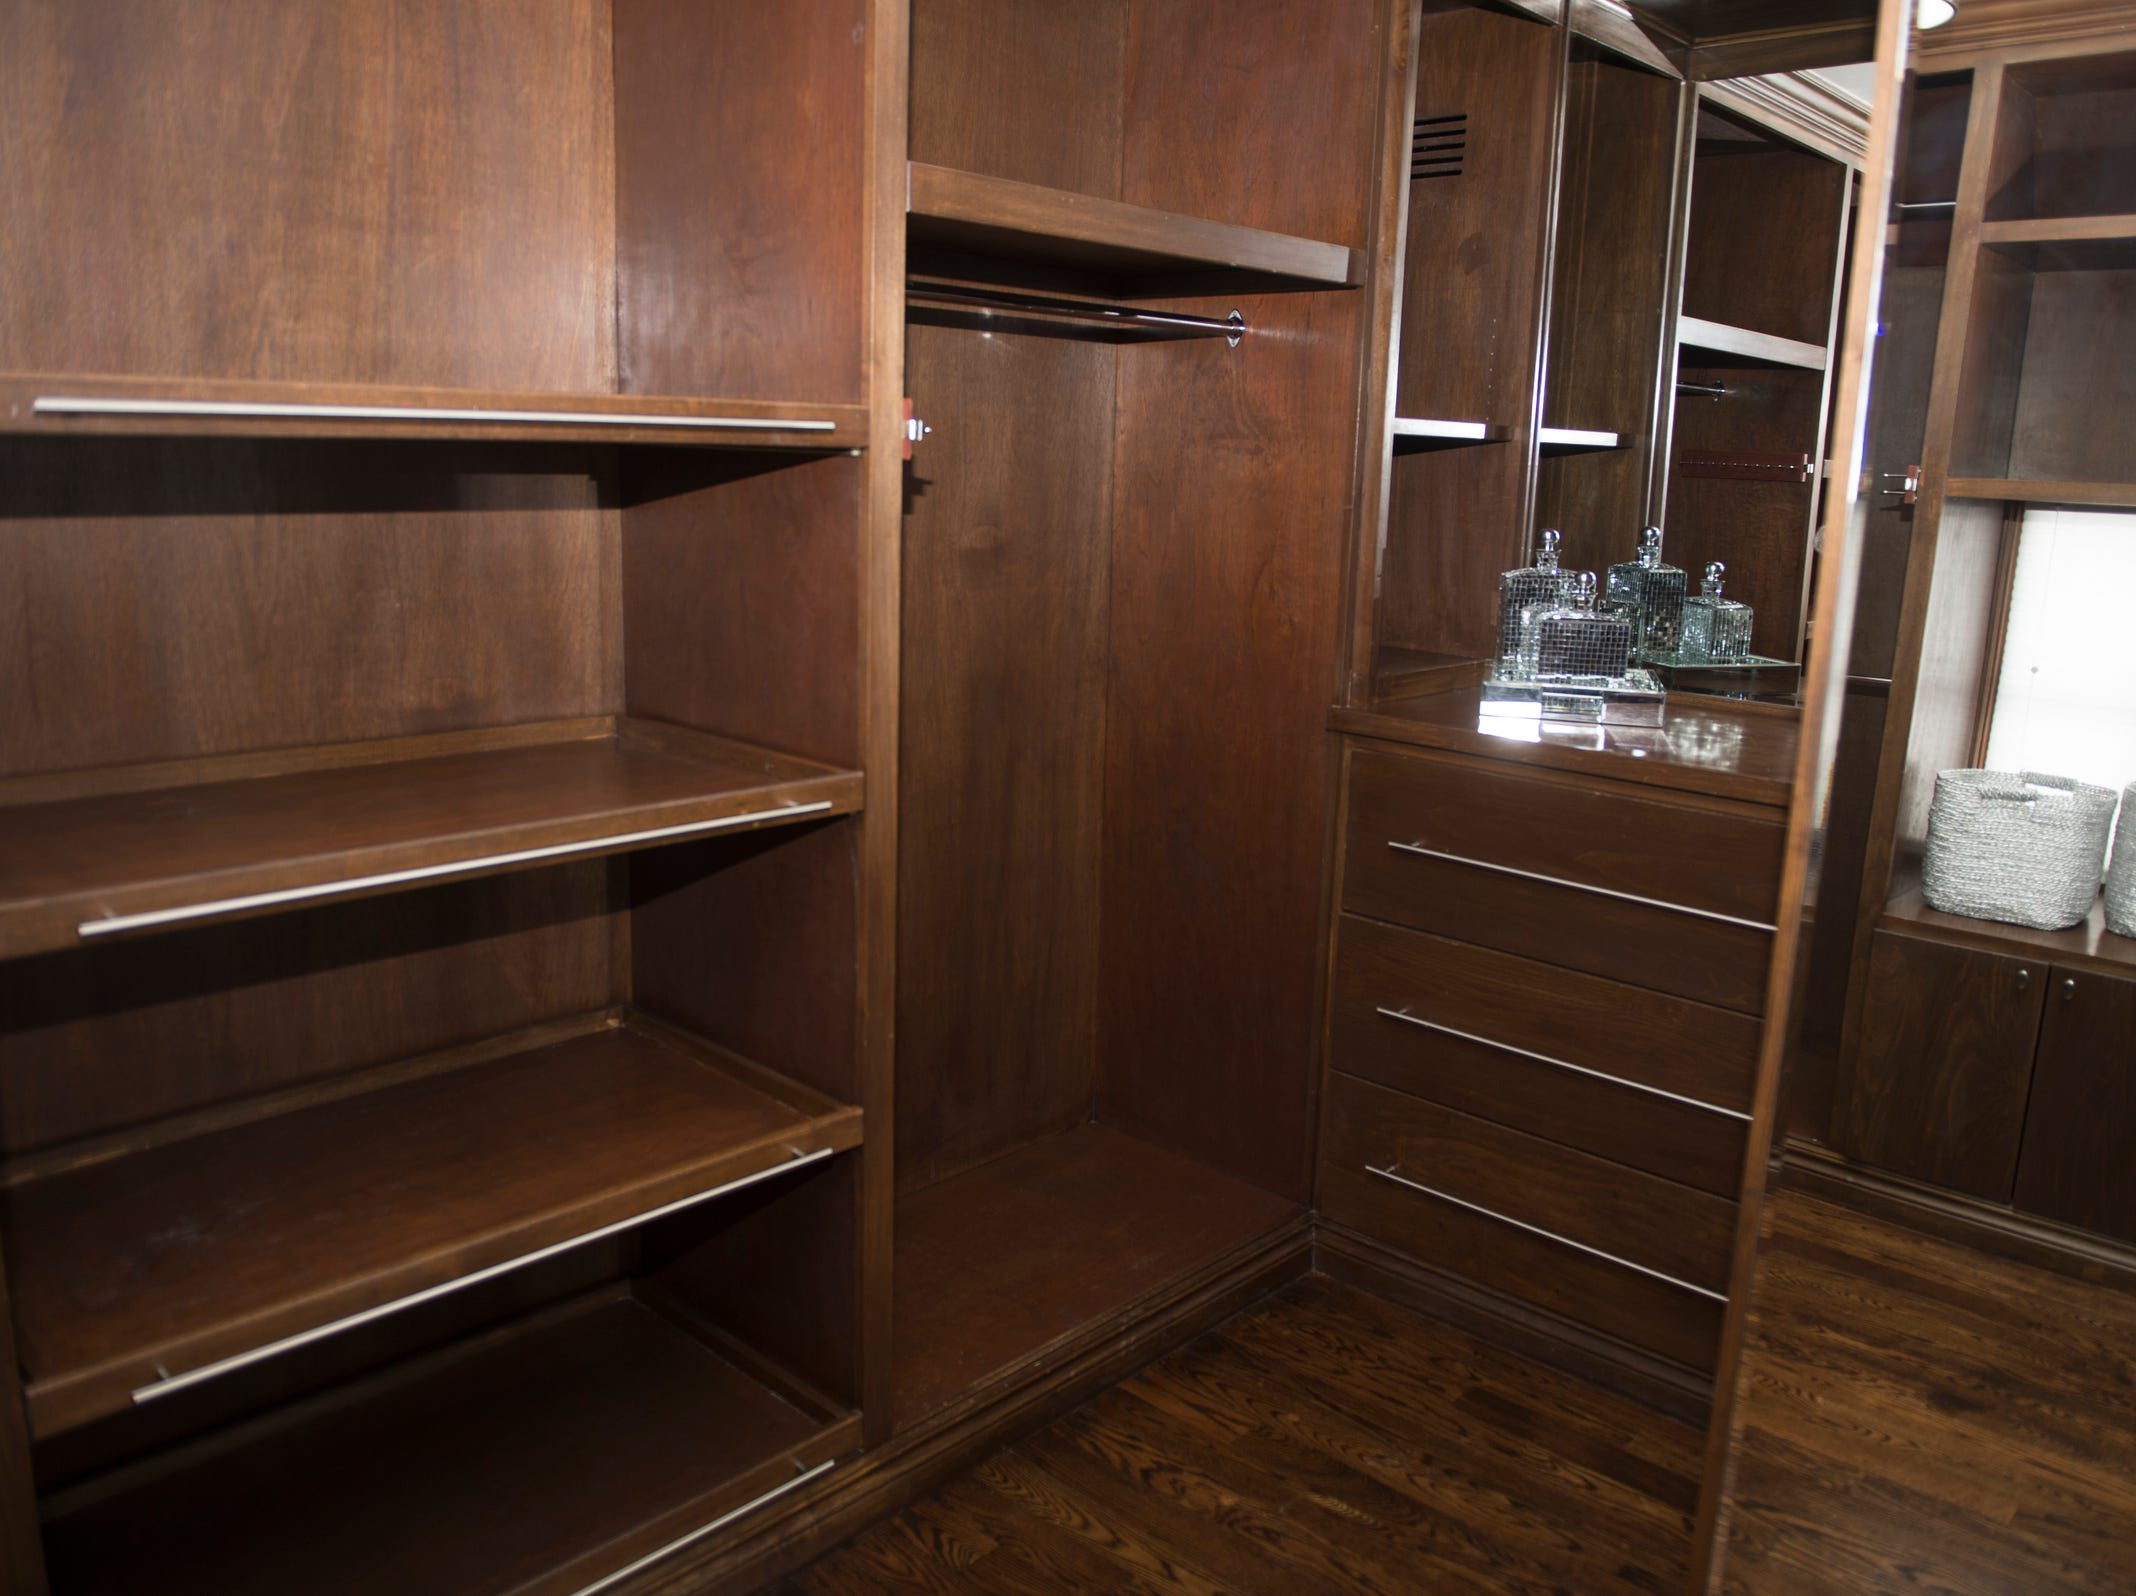 The master bedroom's closet is spacious with plenty of shelving.